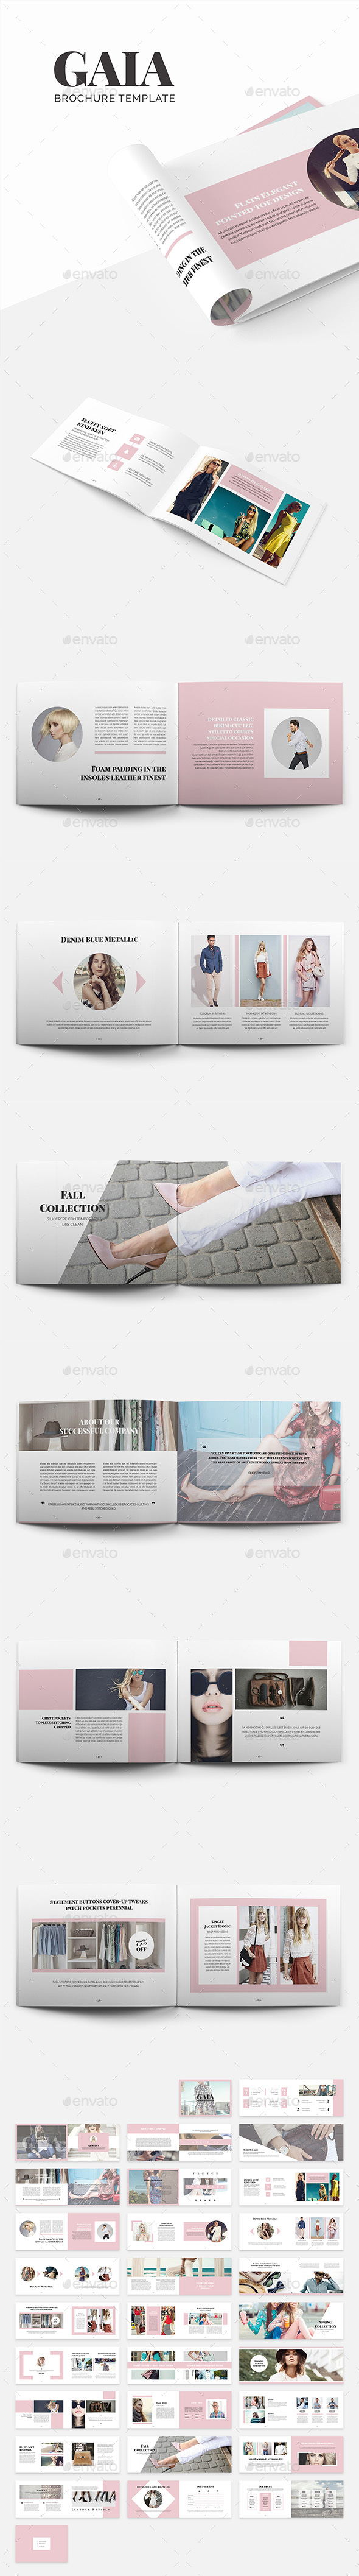 Gaia Brochure Template - Catalogs Brochures